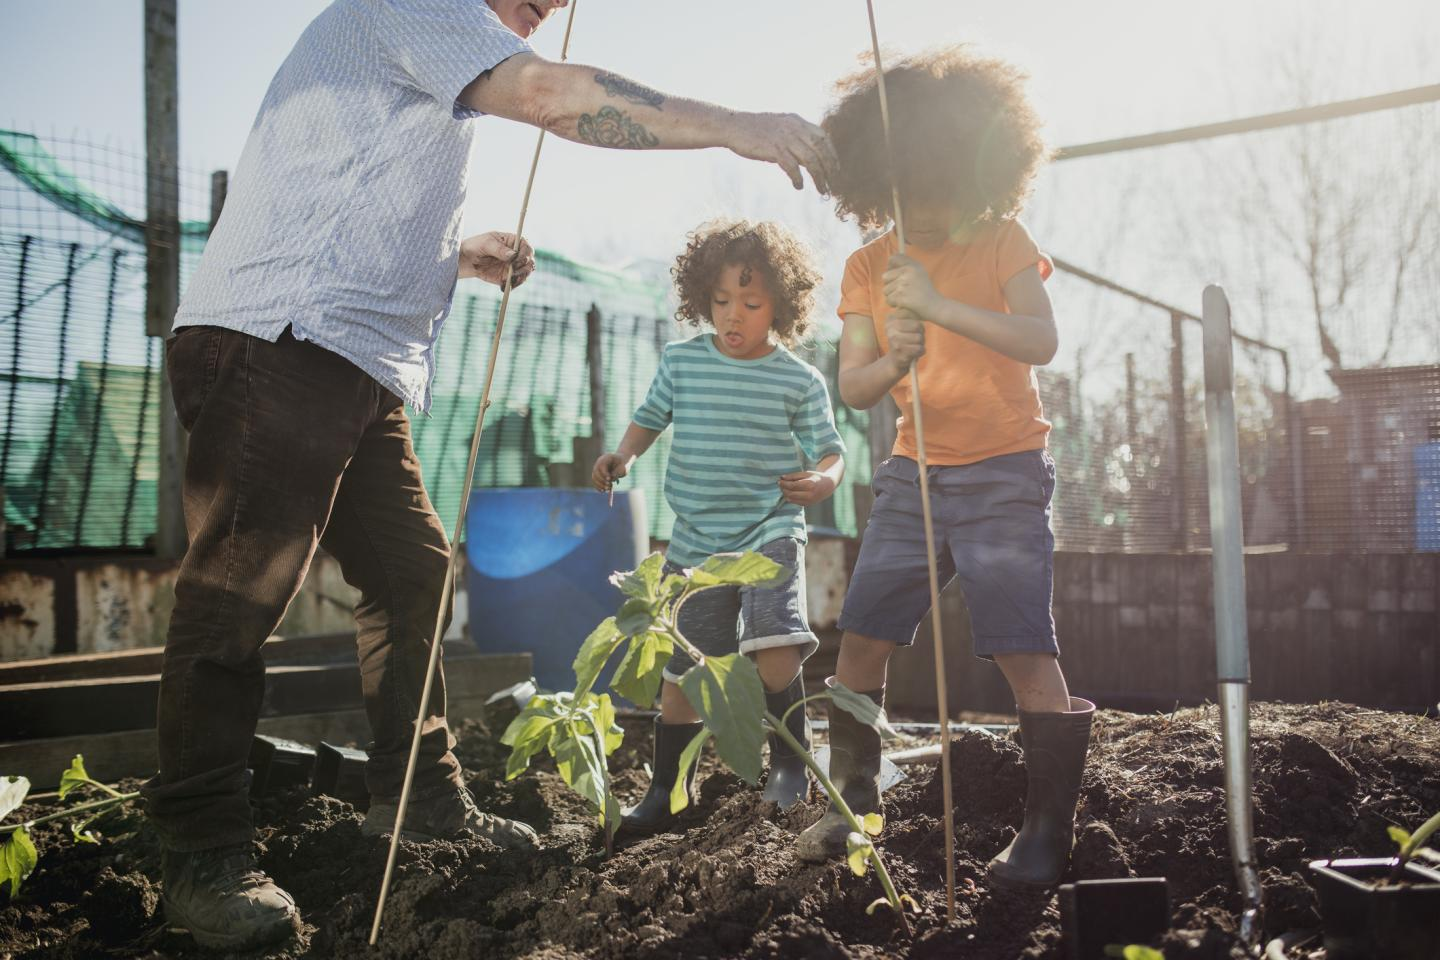 A Family Gardening Together